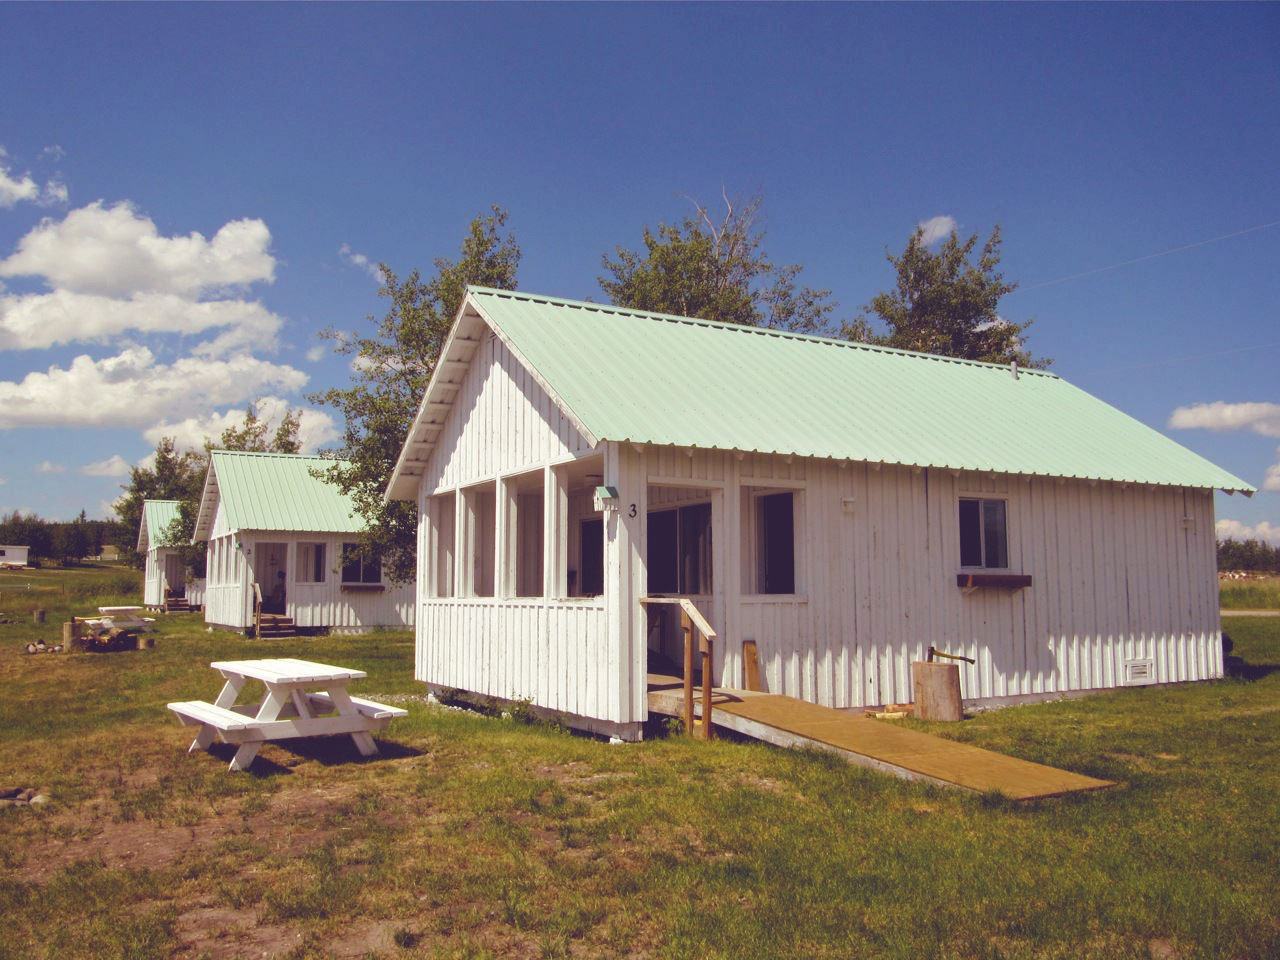 Campground, RV sites and cabin rentals.